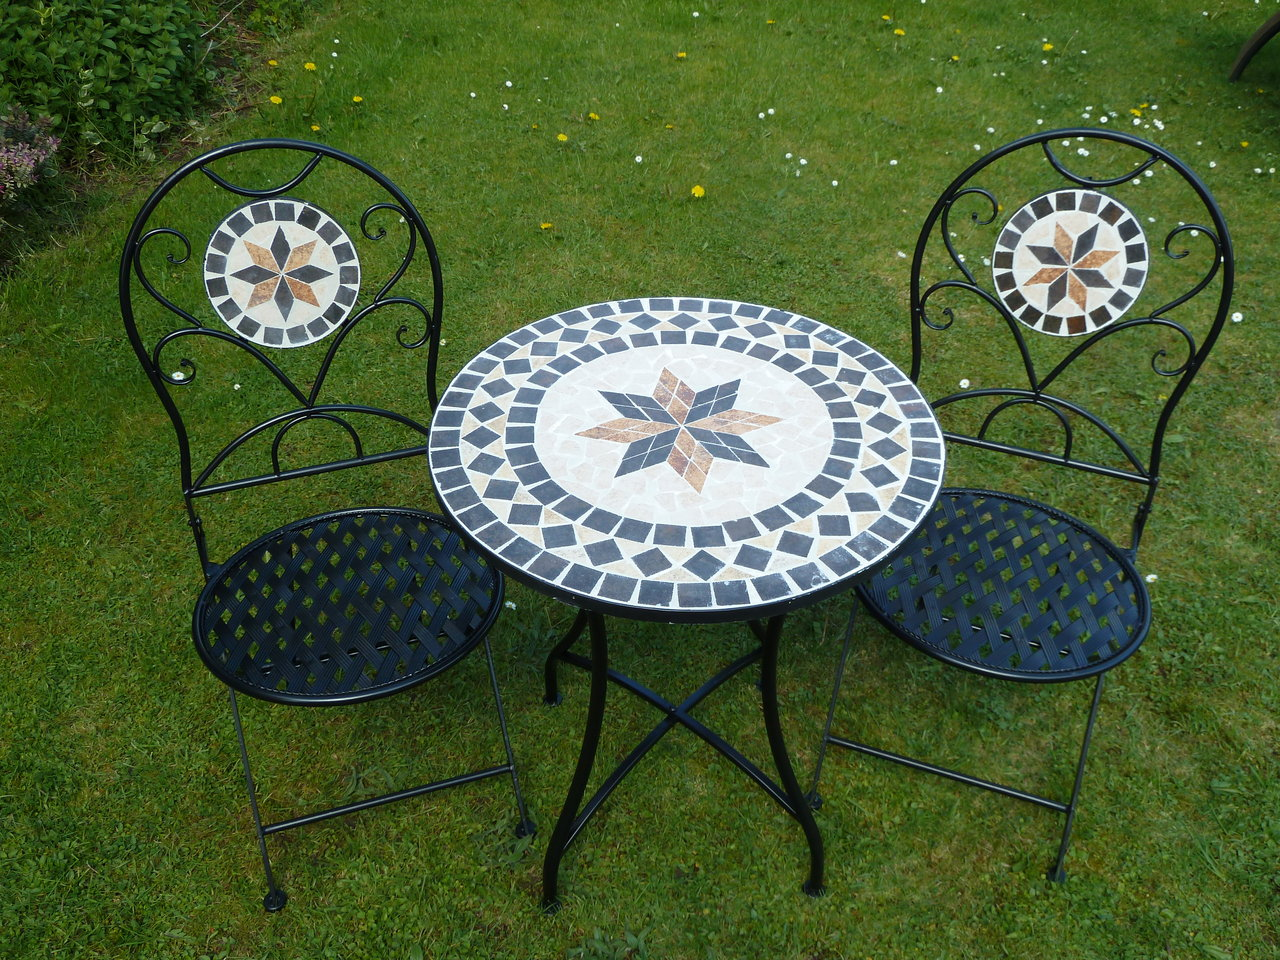 mosaic bistro table in black with double chairs for patio decor ideas - Garden Furniture 3 Piece